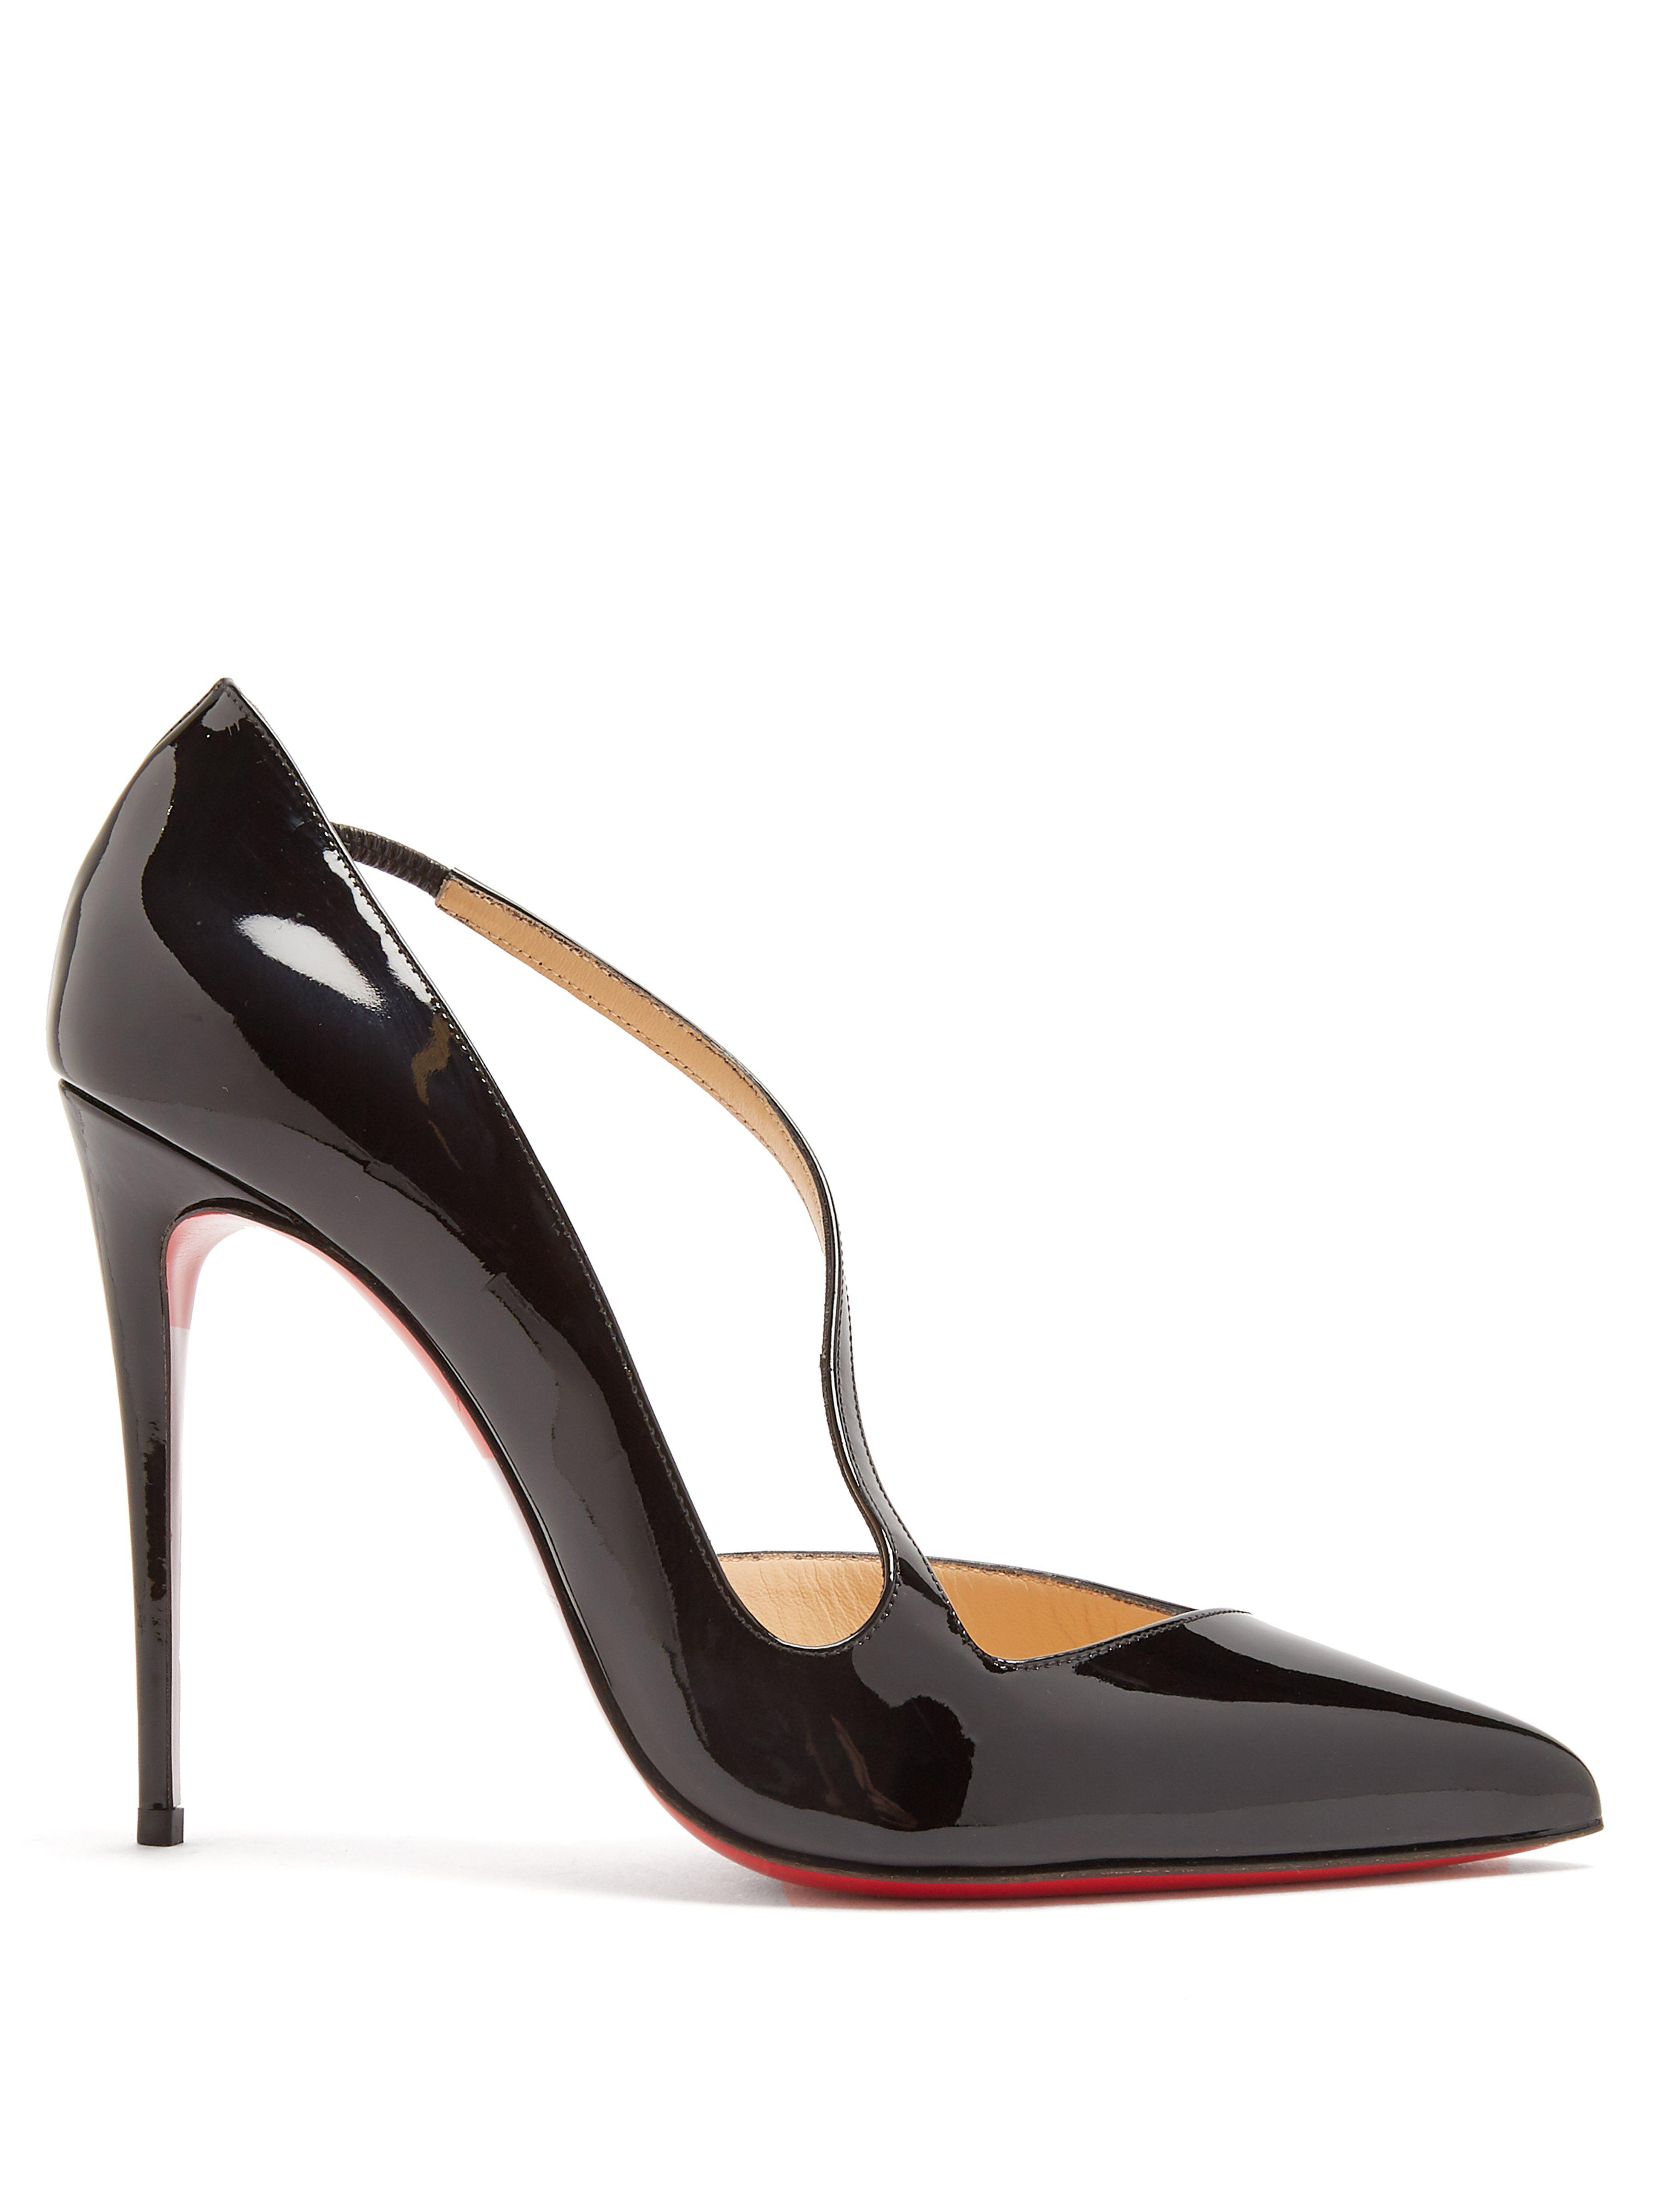 2f2df6cef2f Christian Louboutin Jumping 85 Patent Leather Pumps in Black - Save ...